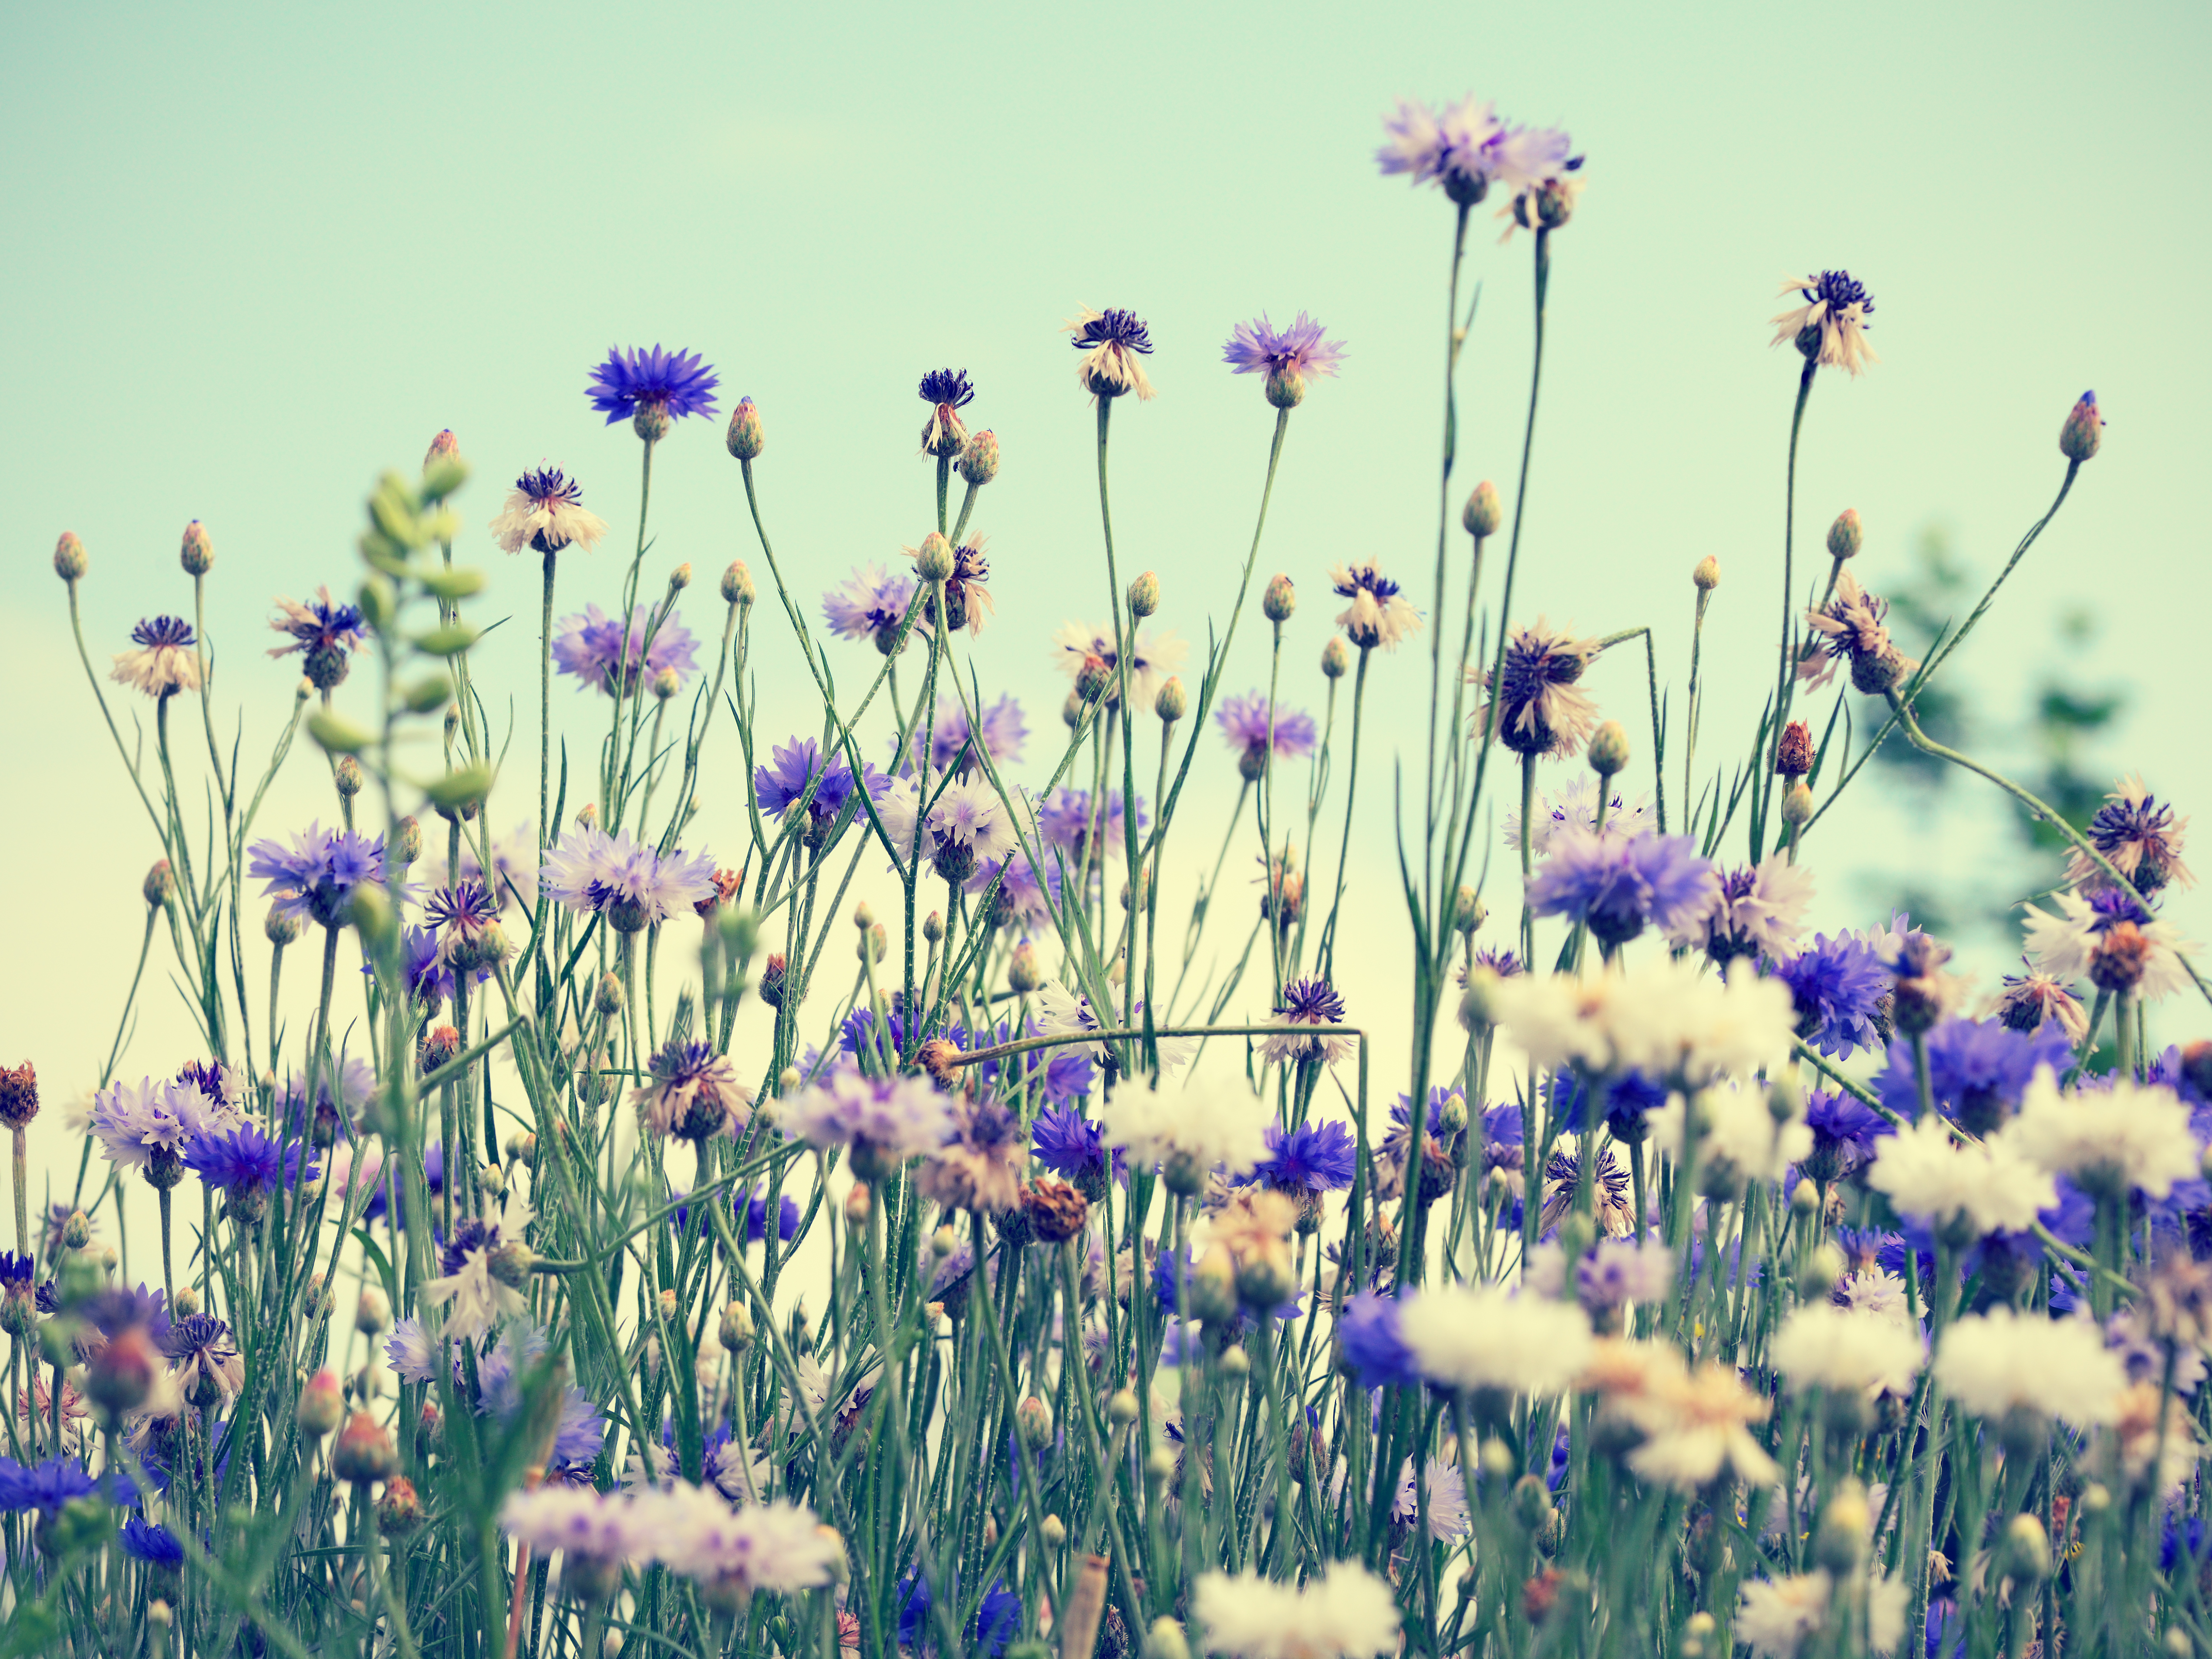 Cornflowers on sky background in retro style